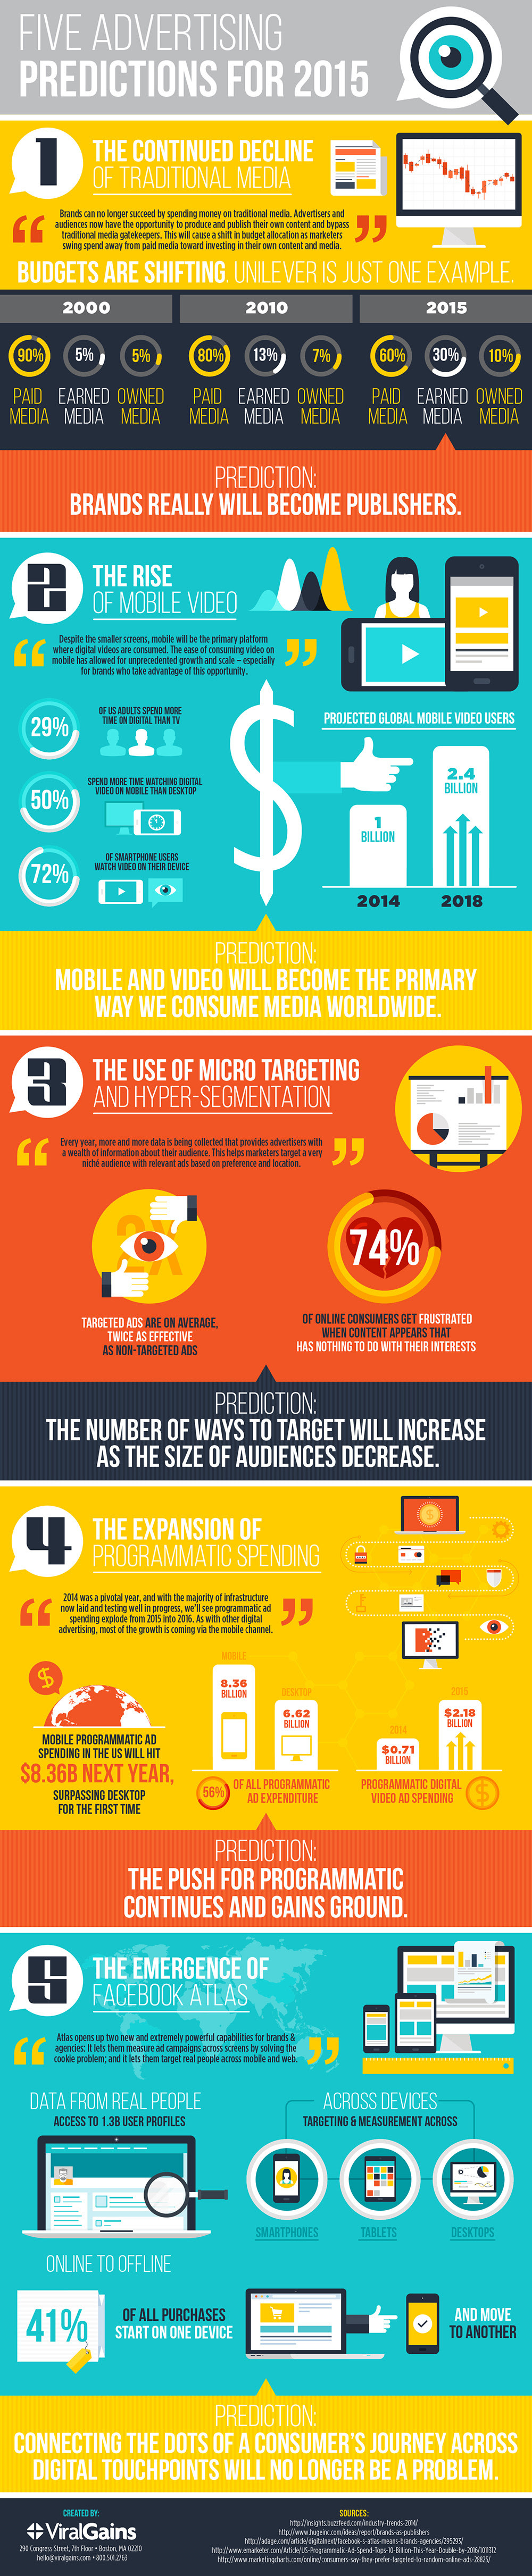 Five Digital Advertising Predictions for 2015 - #Infographic